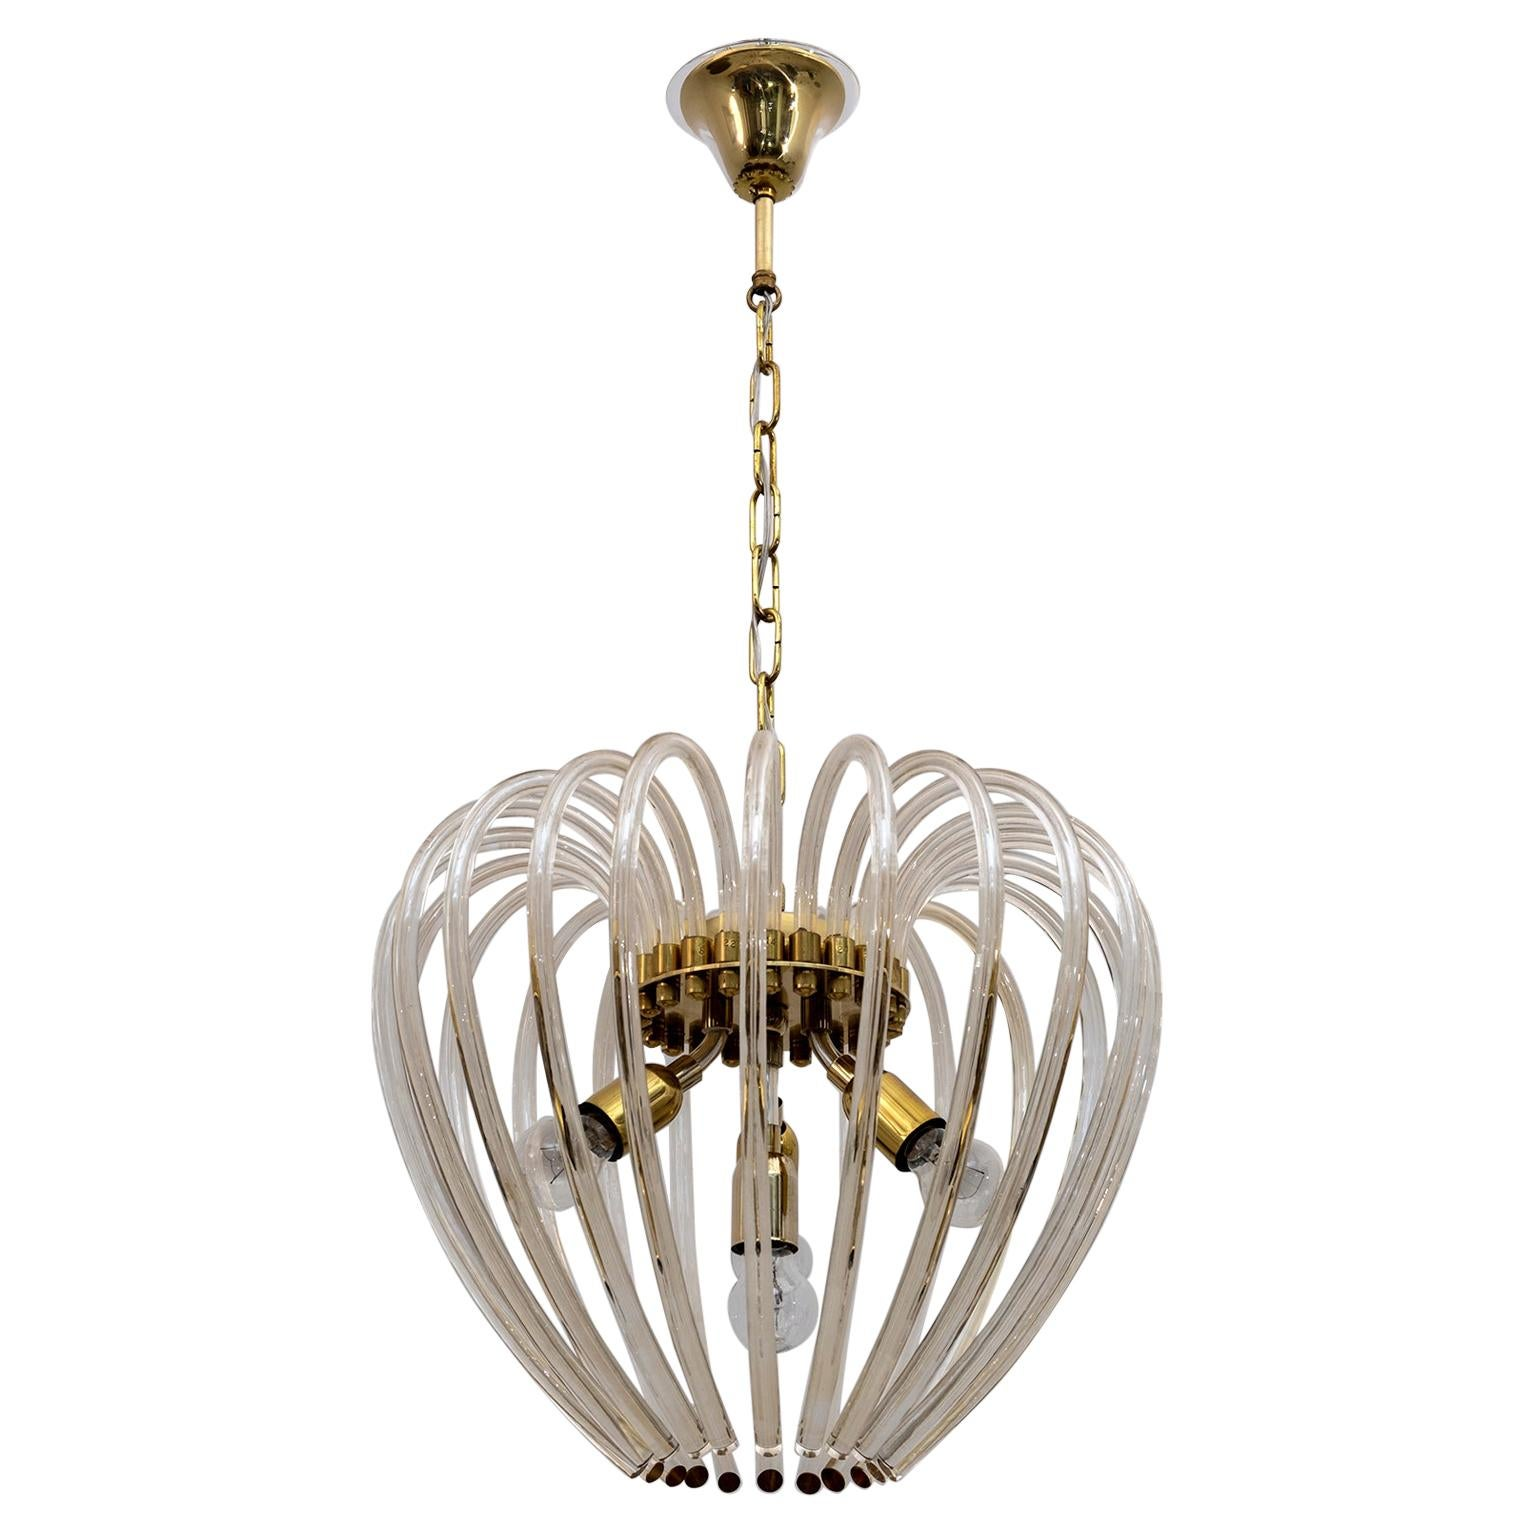 Venini Mid-Century Modern Italian Murano Glass and Brass Chandelier, 1950s